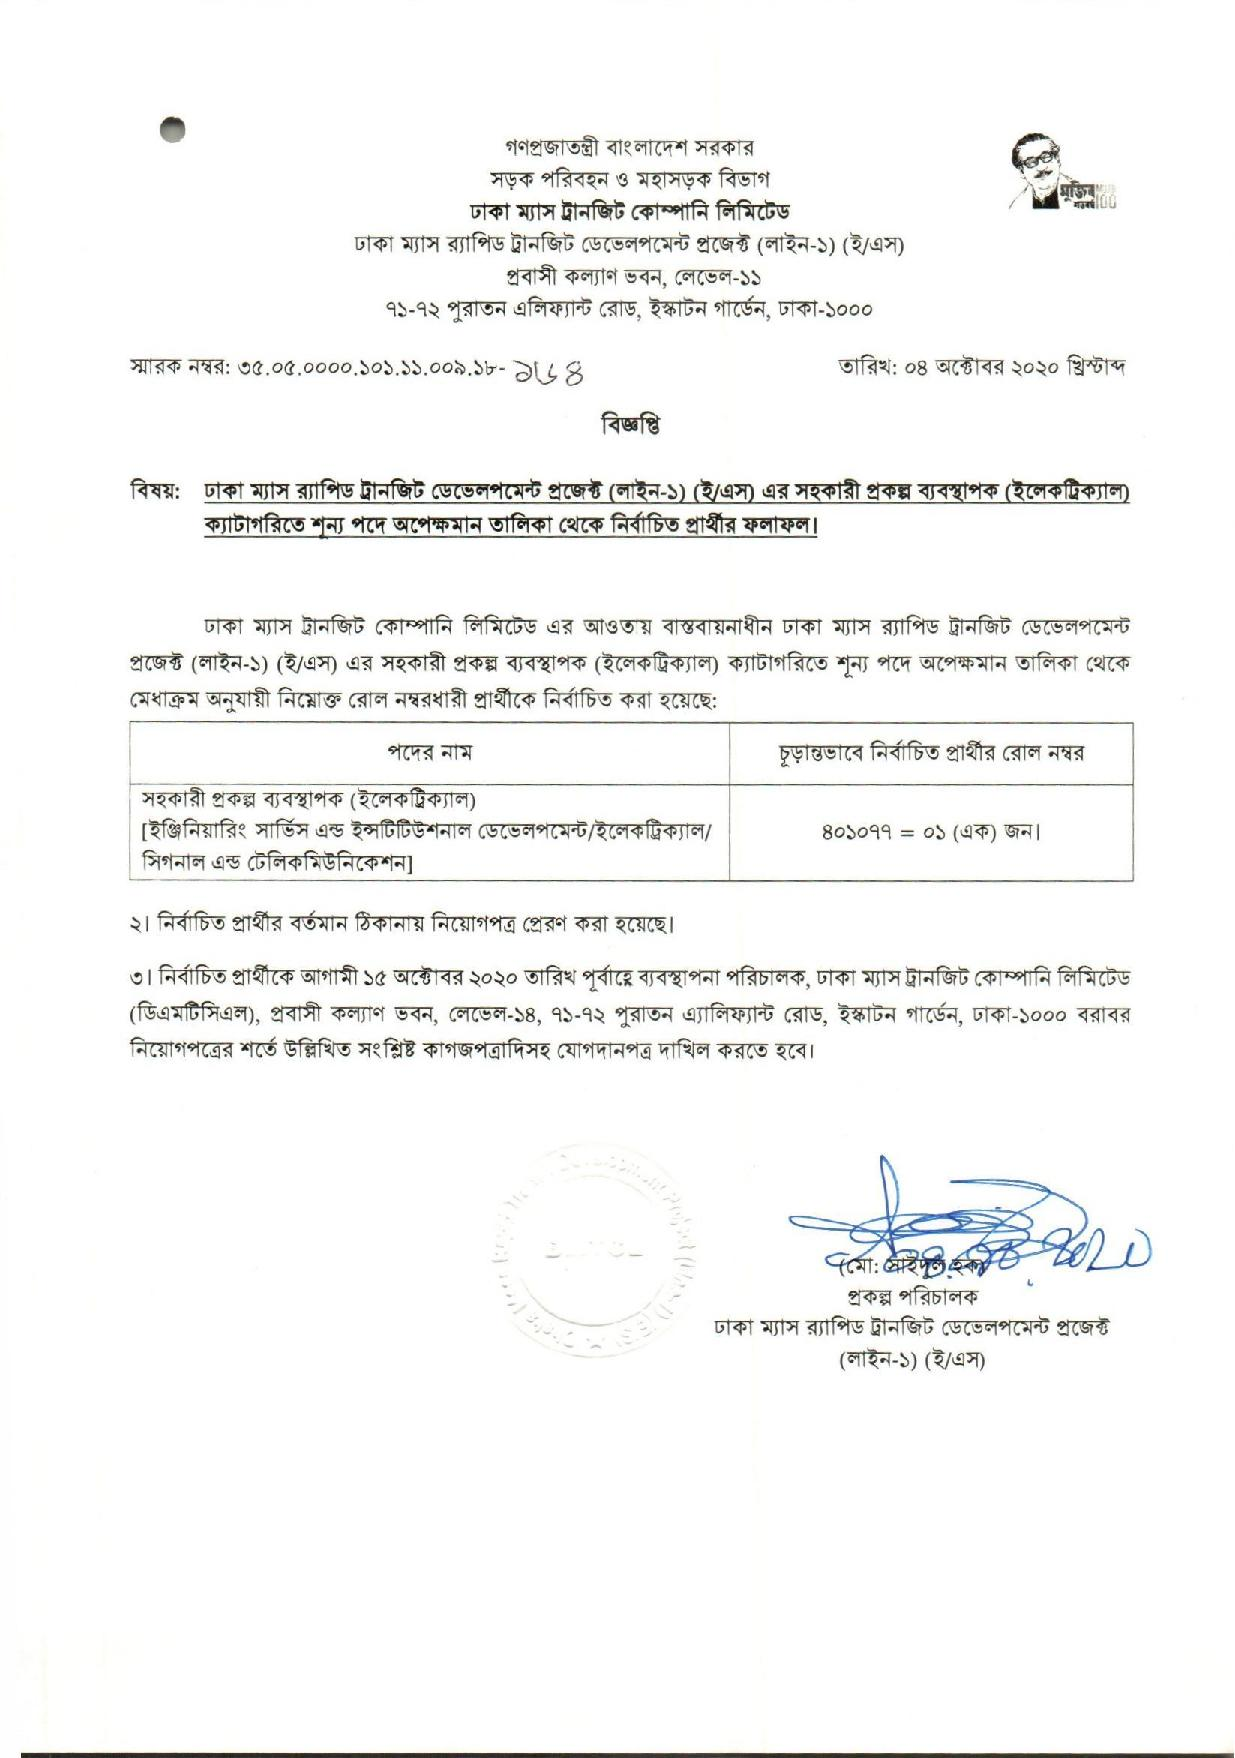 DMTCL Exam result 2020